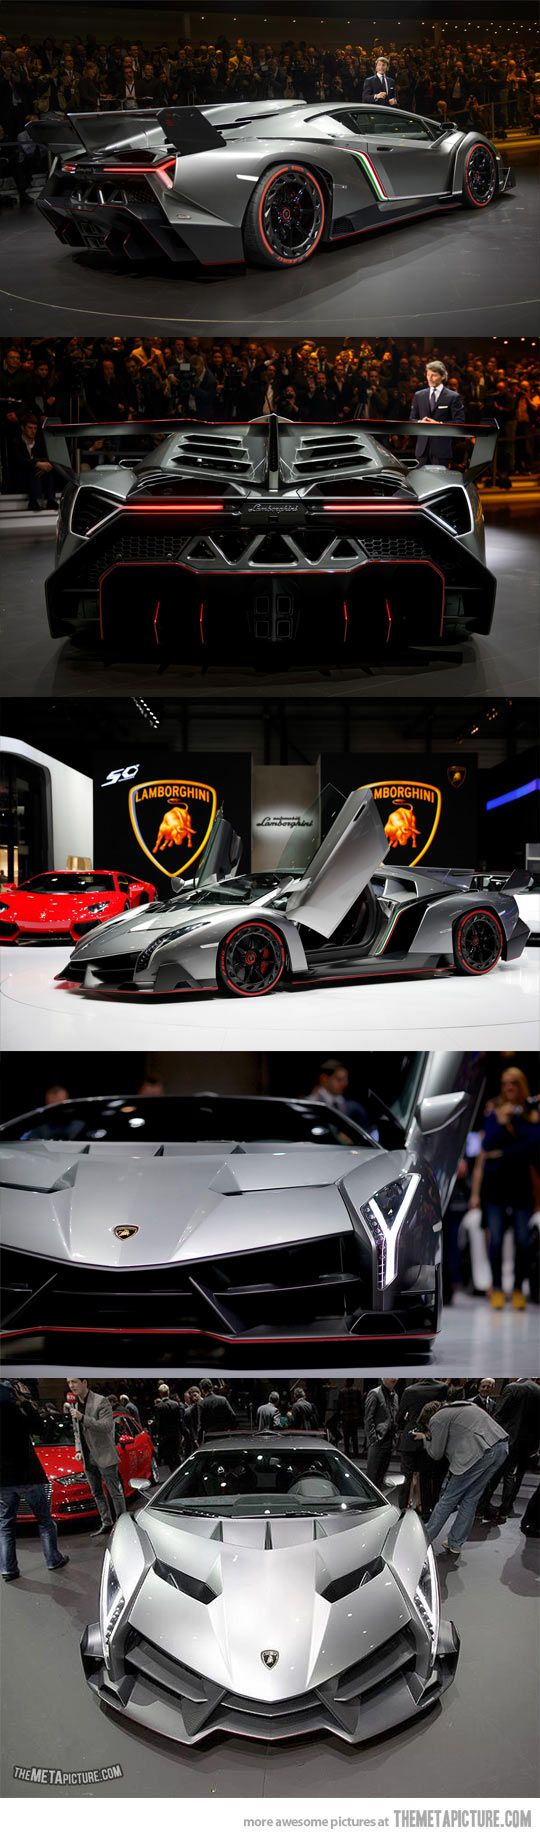 Lamborghini Veneno, only 3 were made in the world…